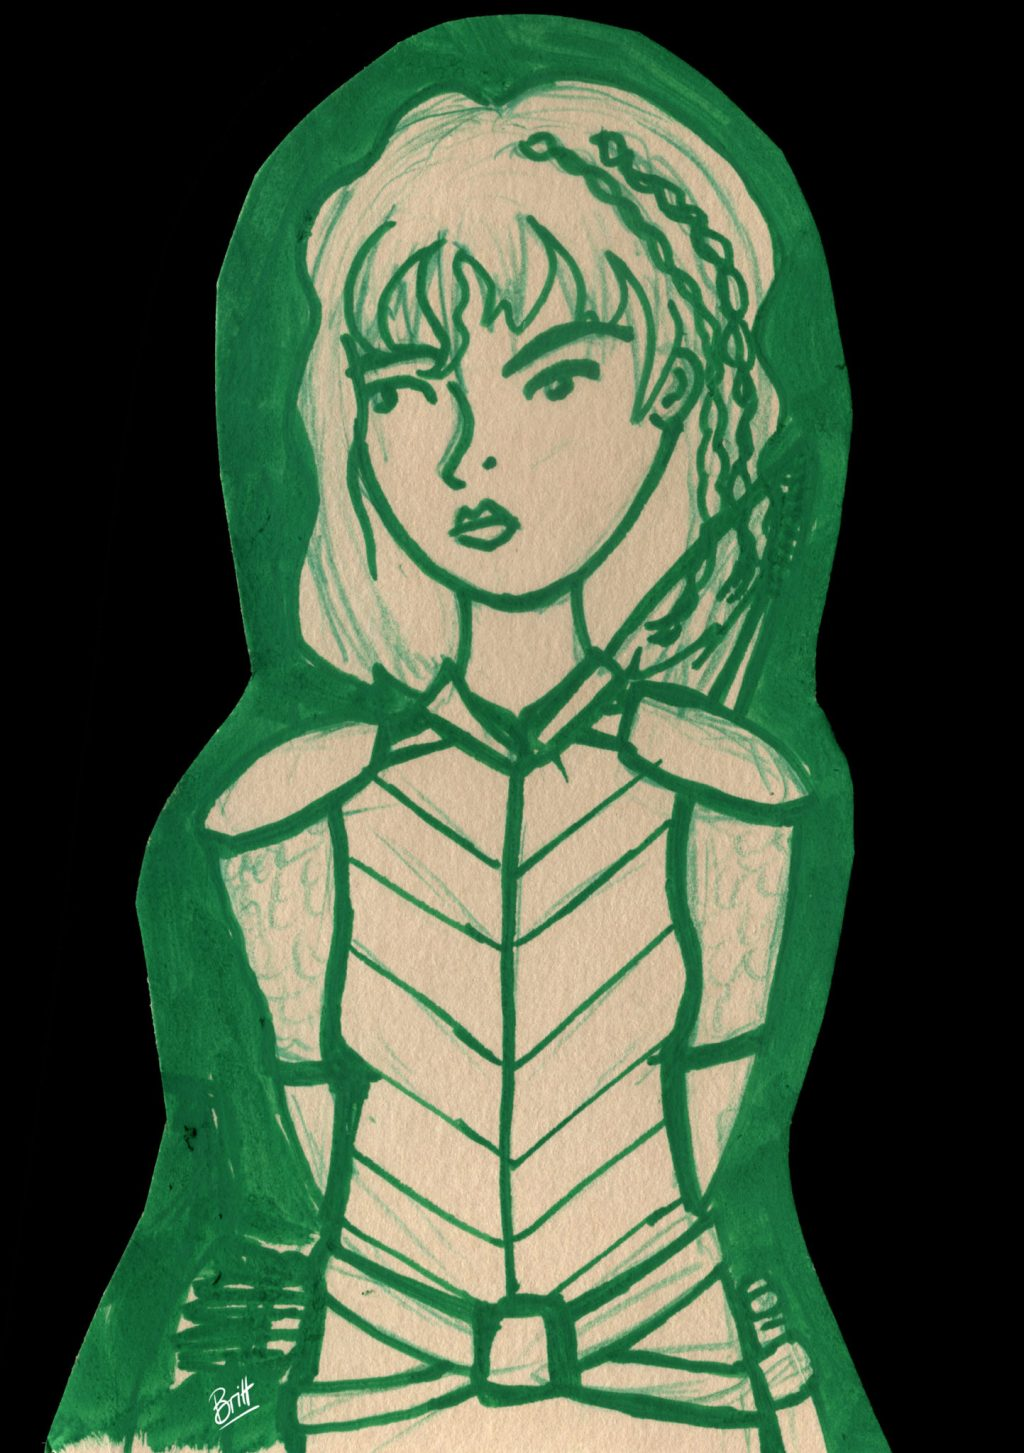 Berna, one of my D&D characters, a ranger, looking serious, drawn in green.